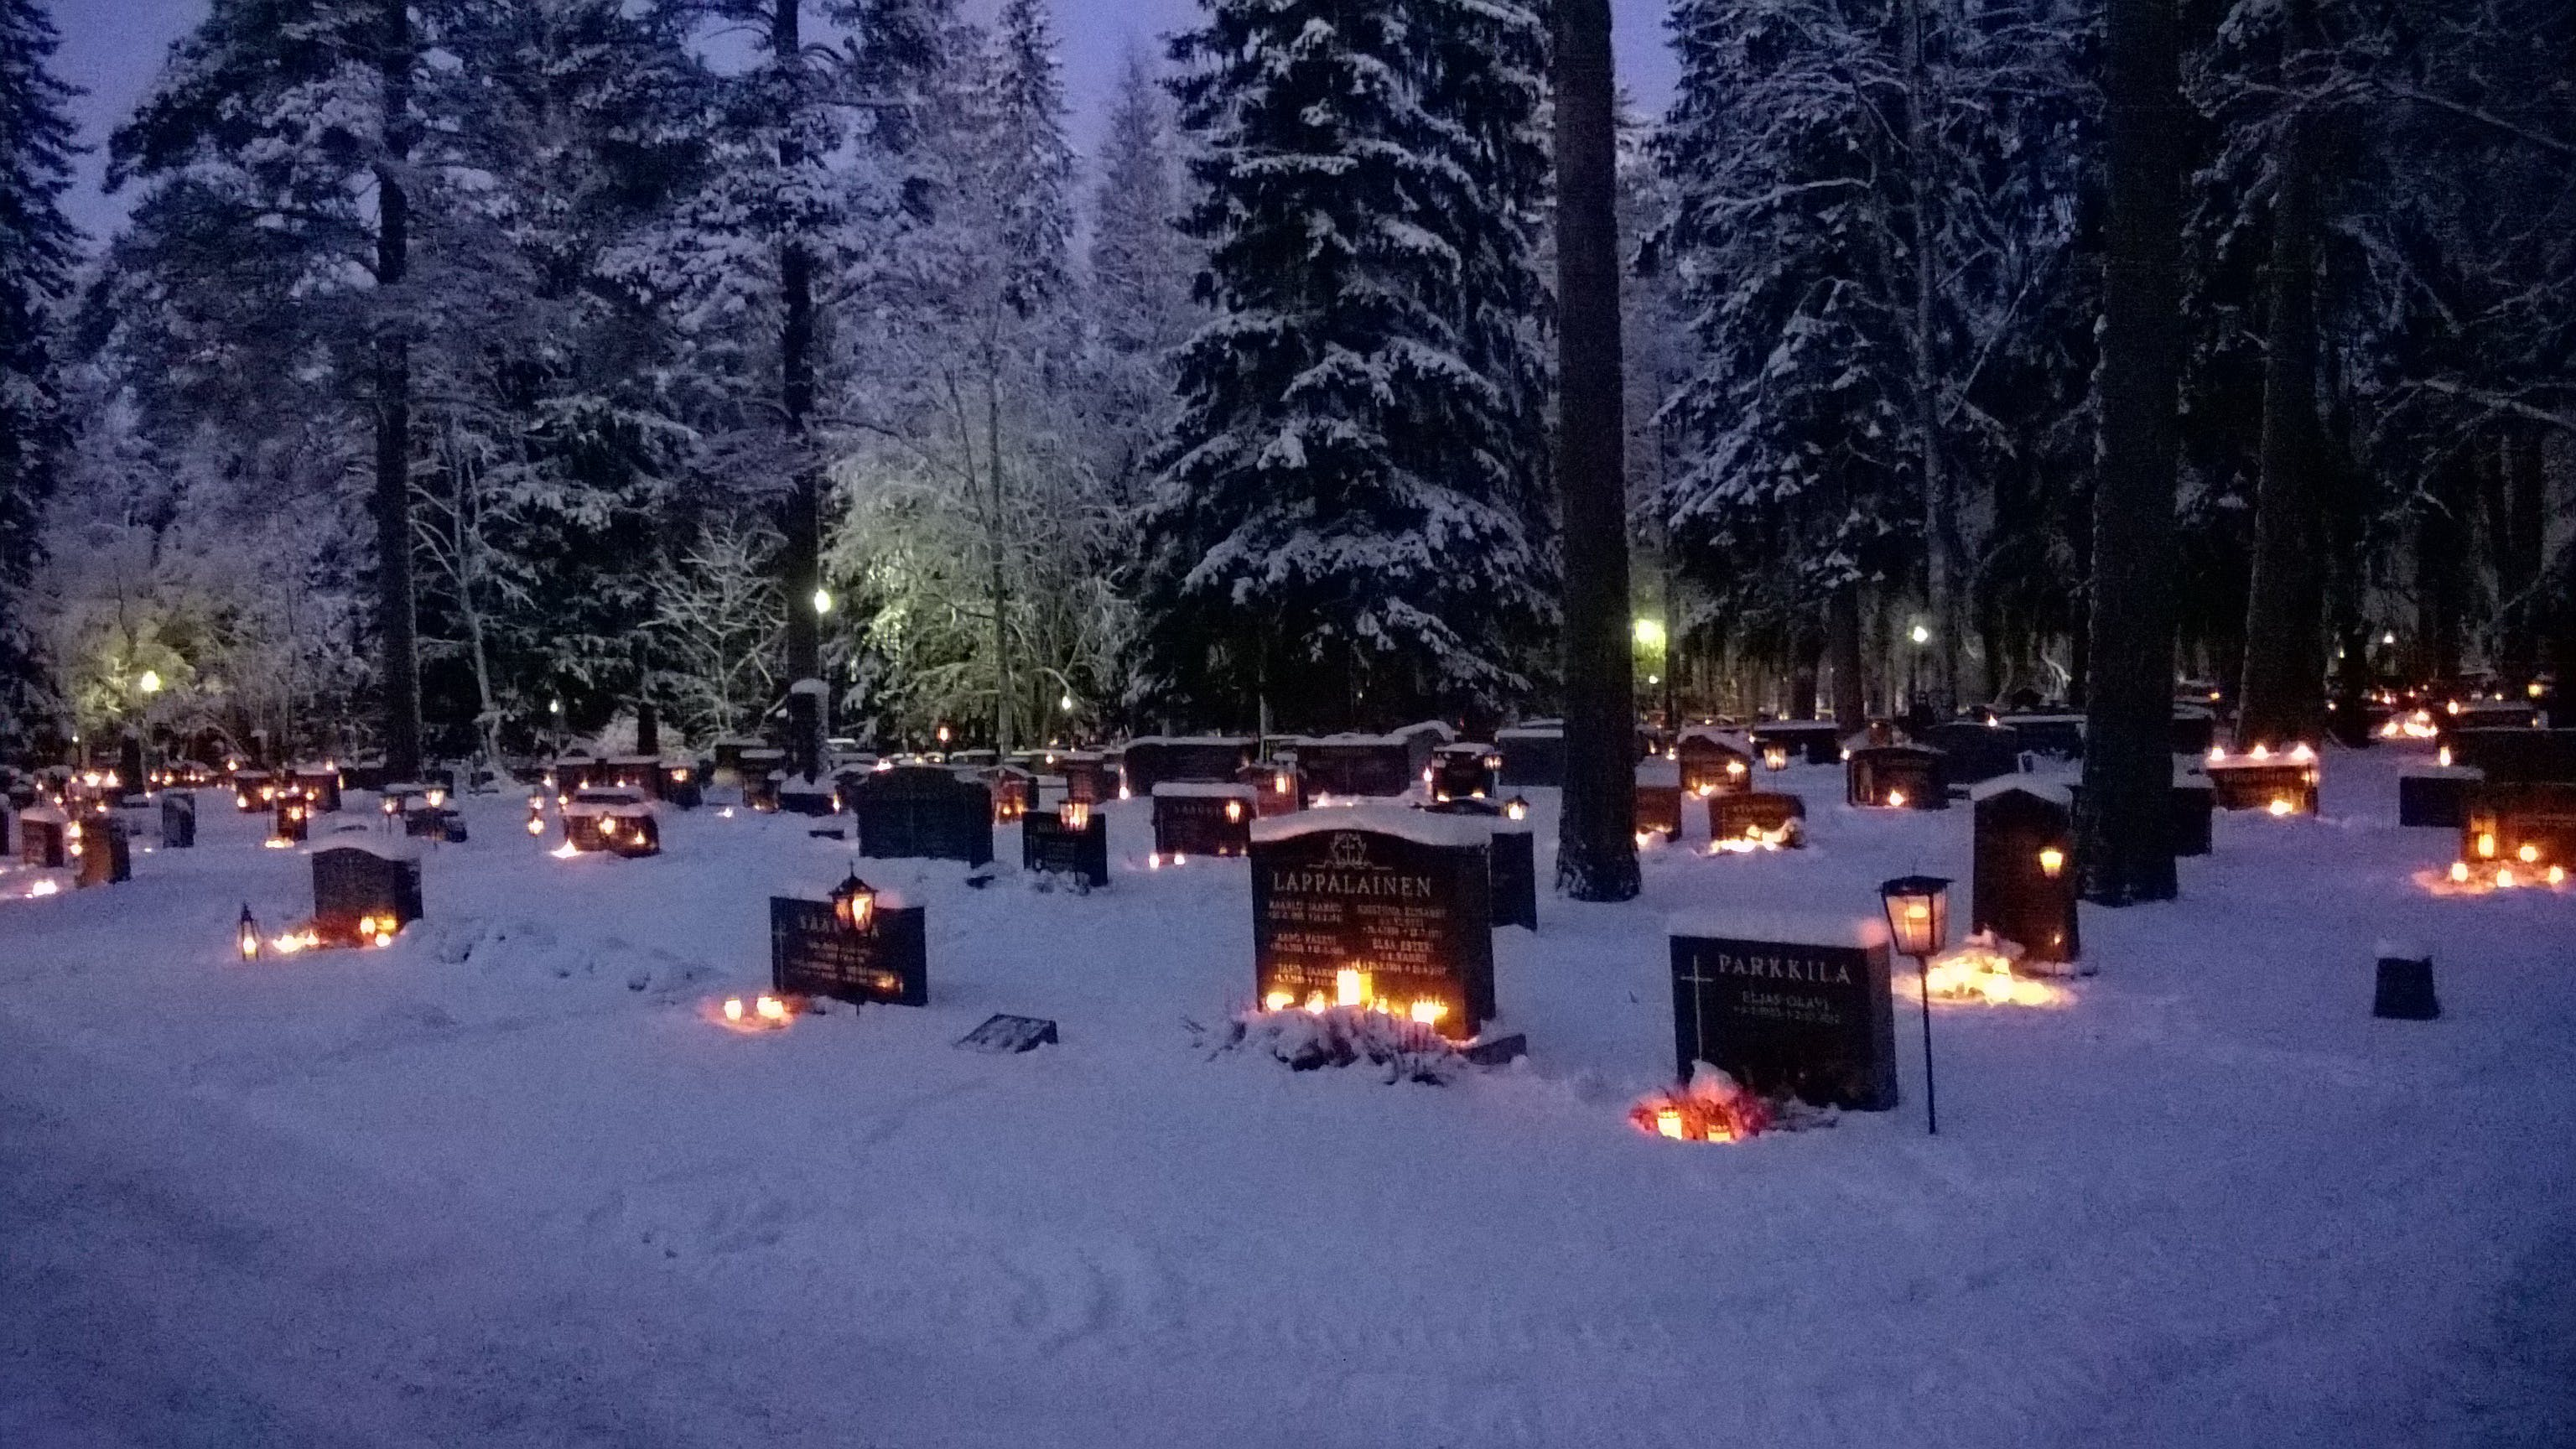 Free stock photo of candles, cemetary, Finland, forest